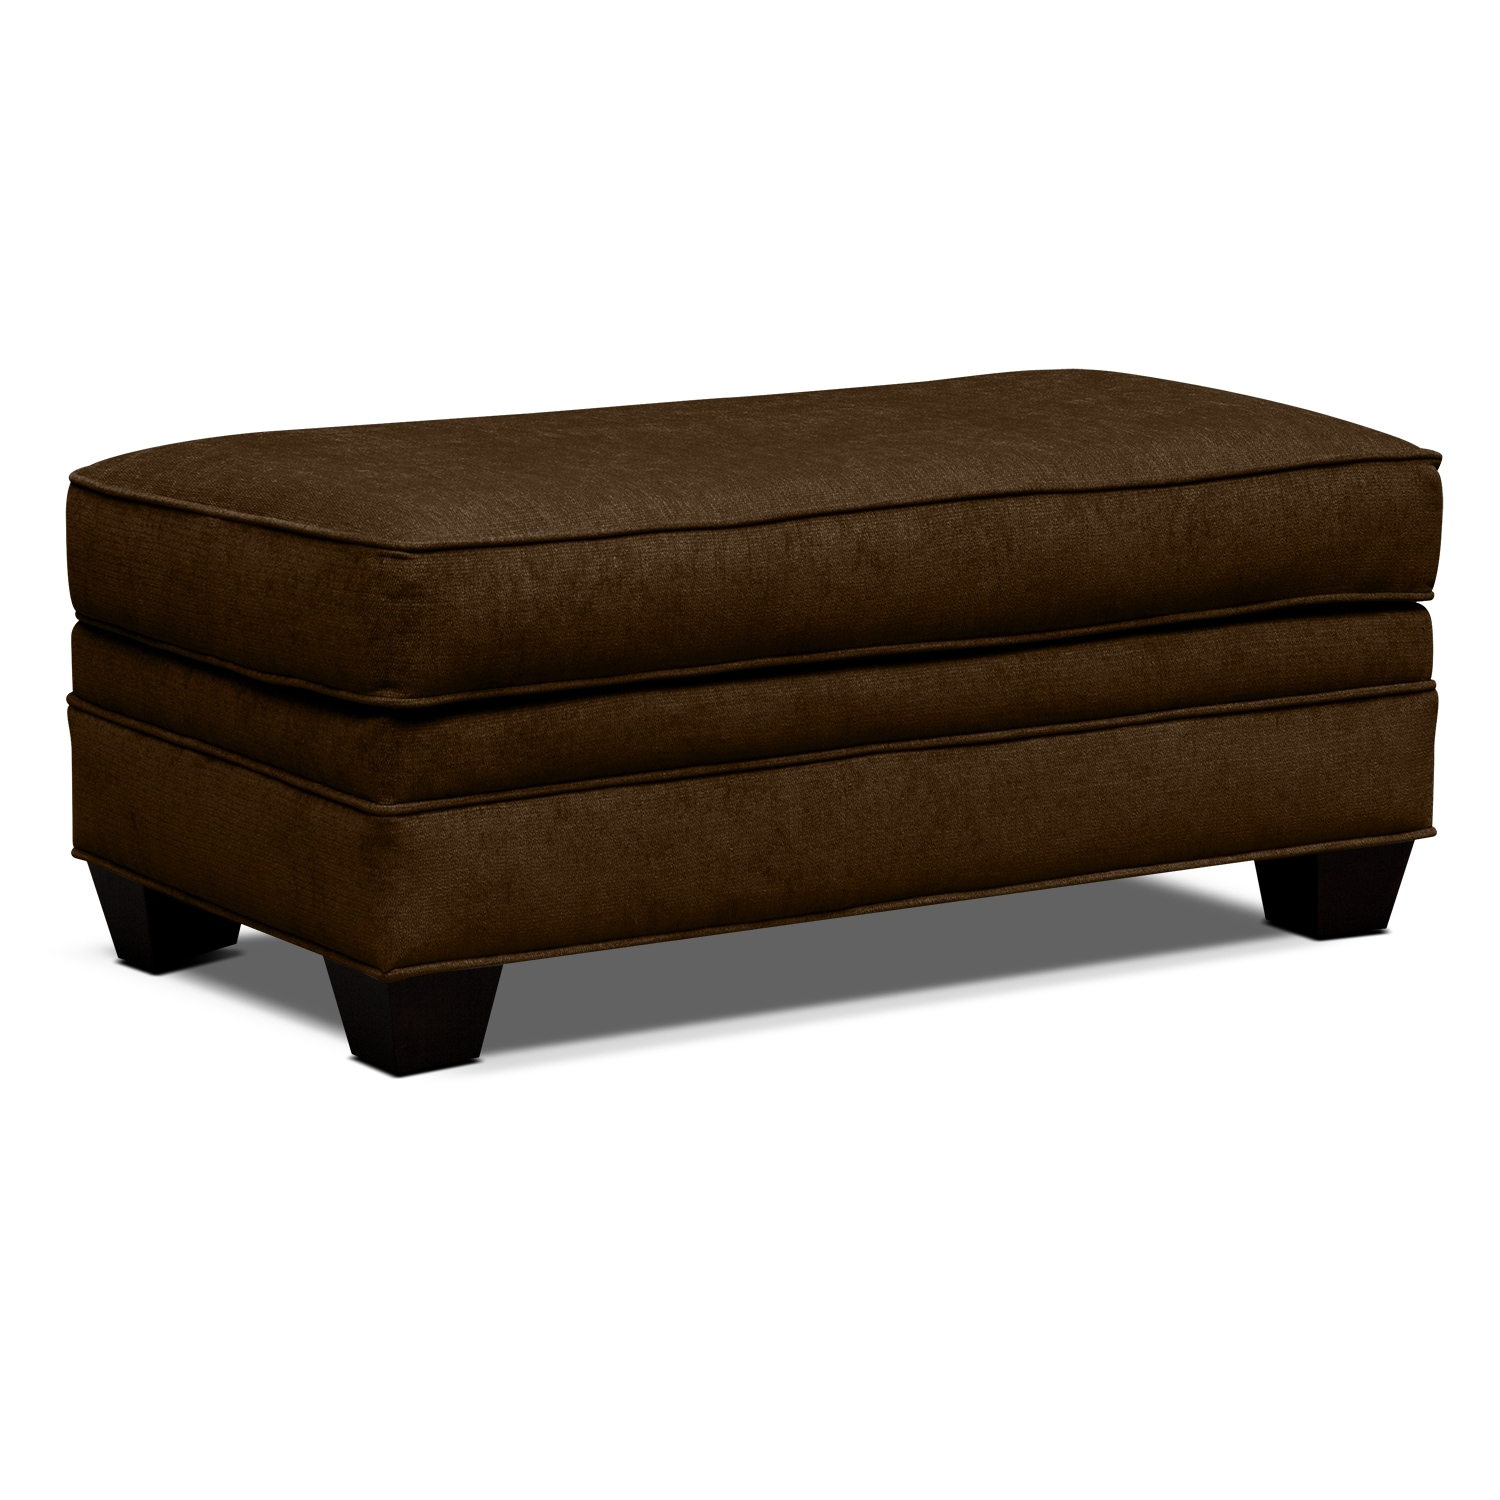 Modern twin bed with storage - Mandalay Upholstery Cocktail Ottoman Value City Furniture